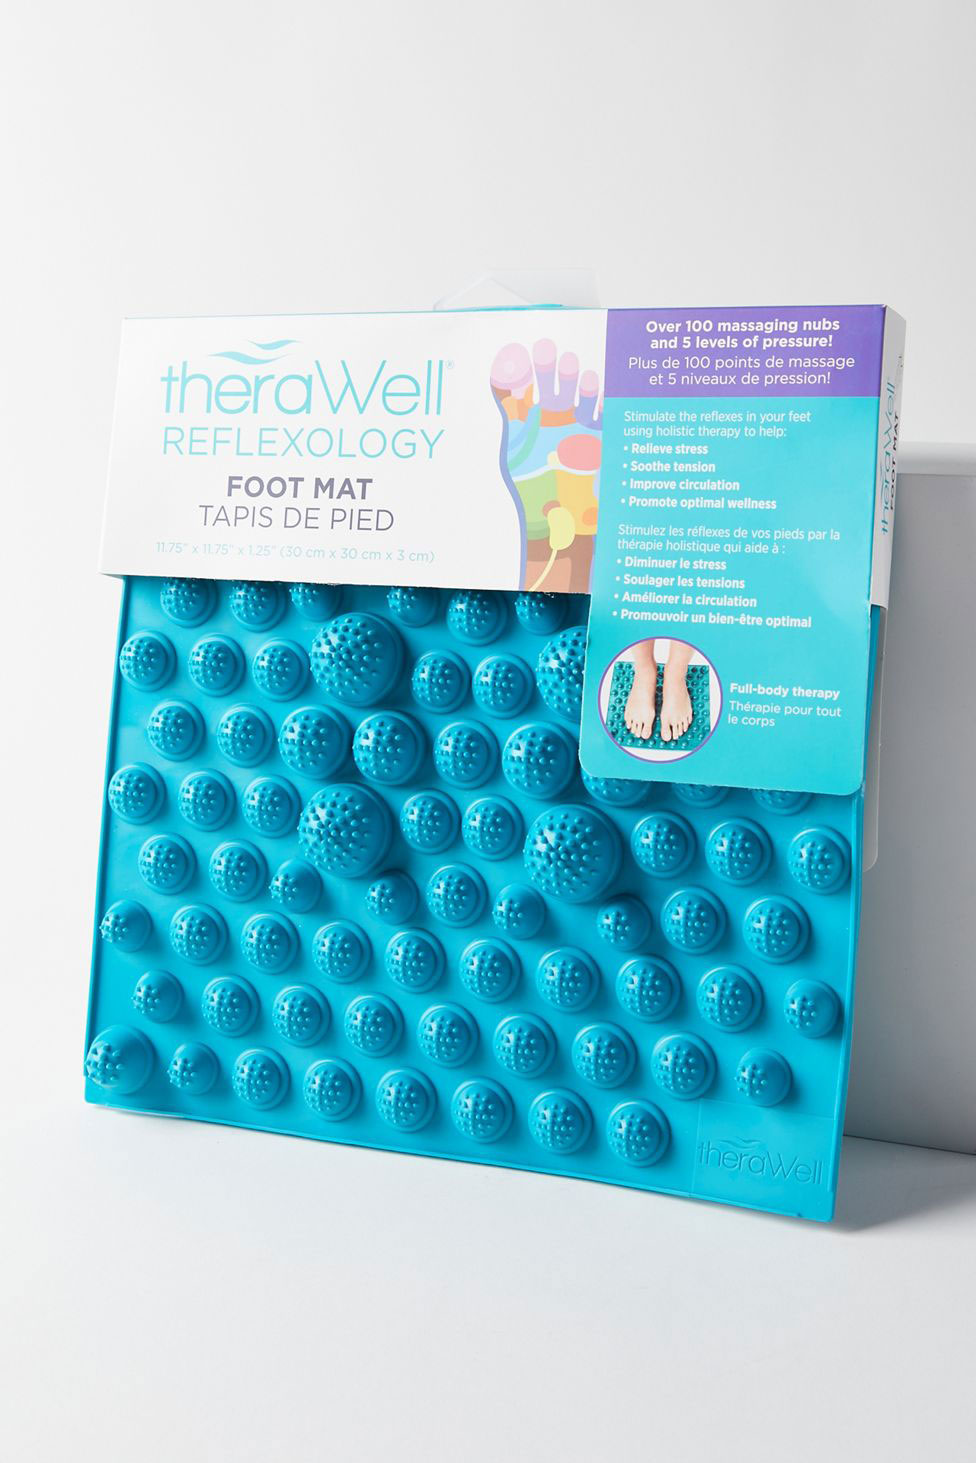 6 Clever Items (1/29/21) - Therawell Reflexology Foot Mat